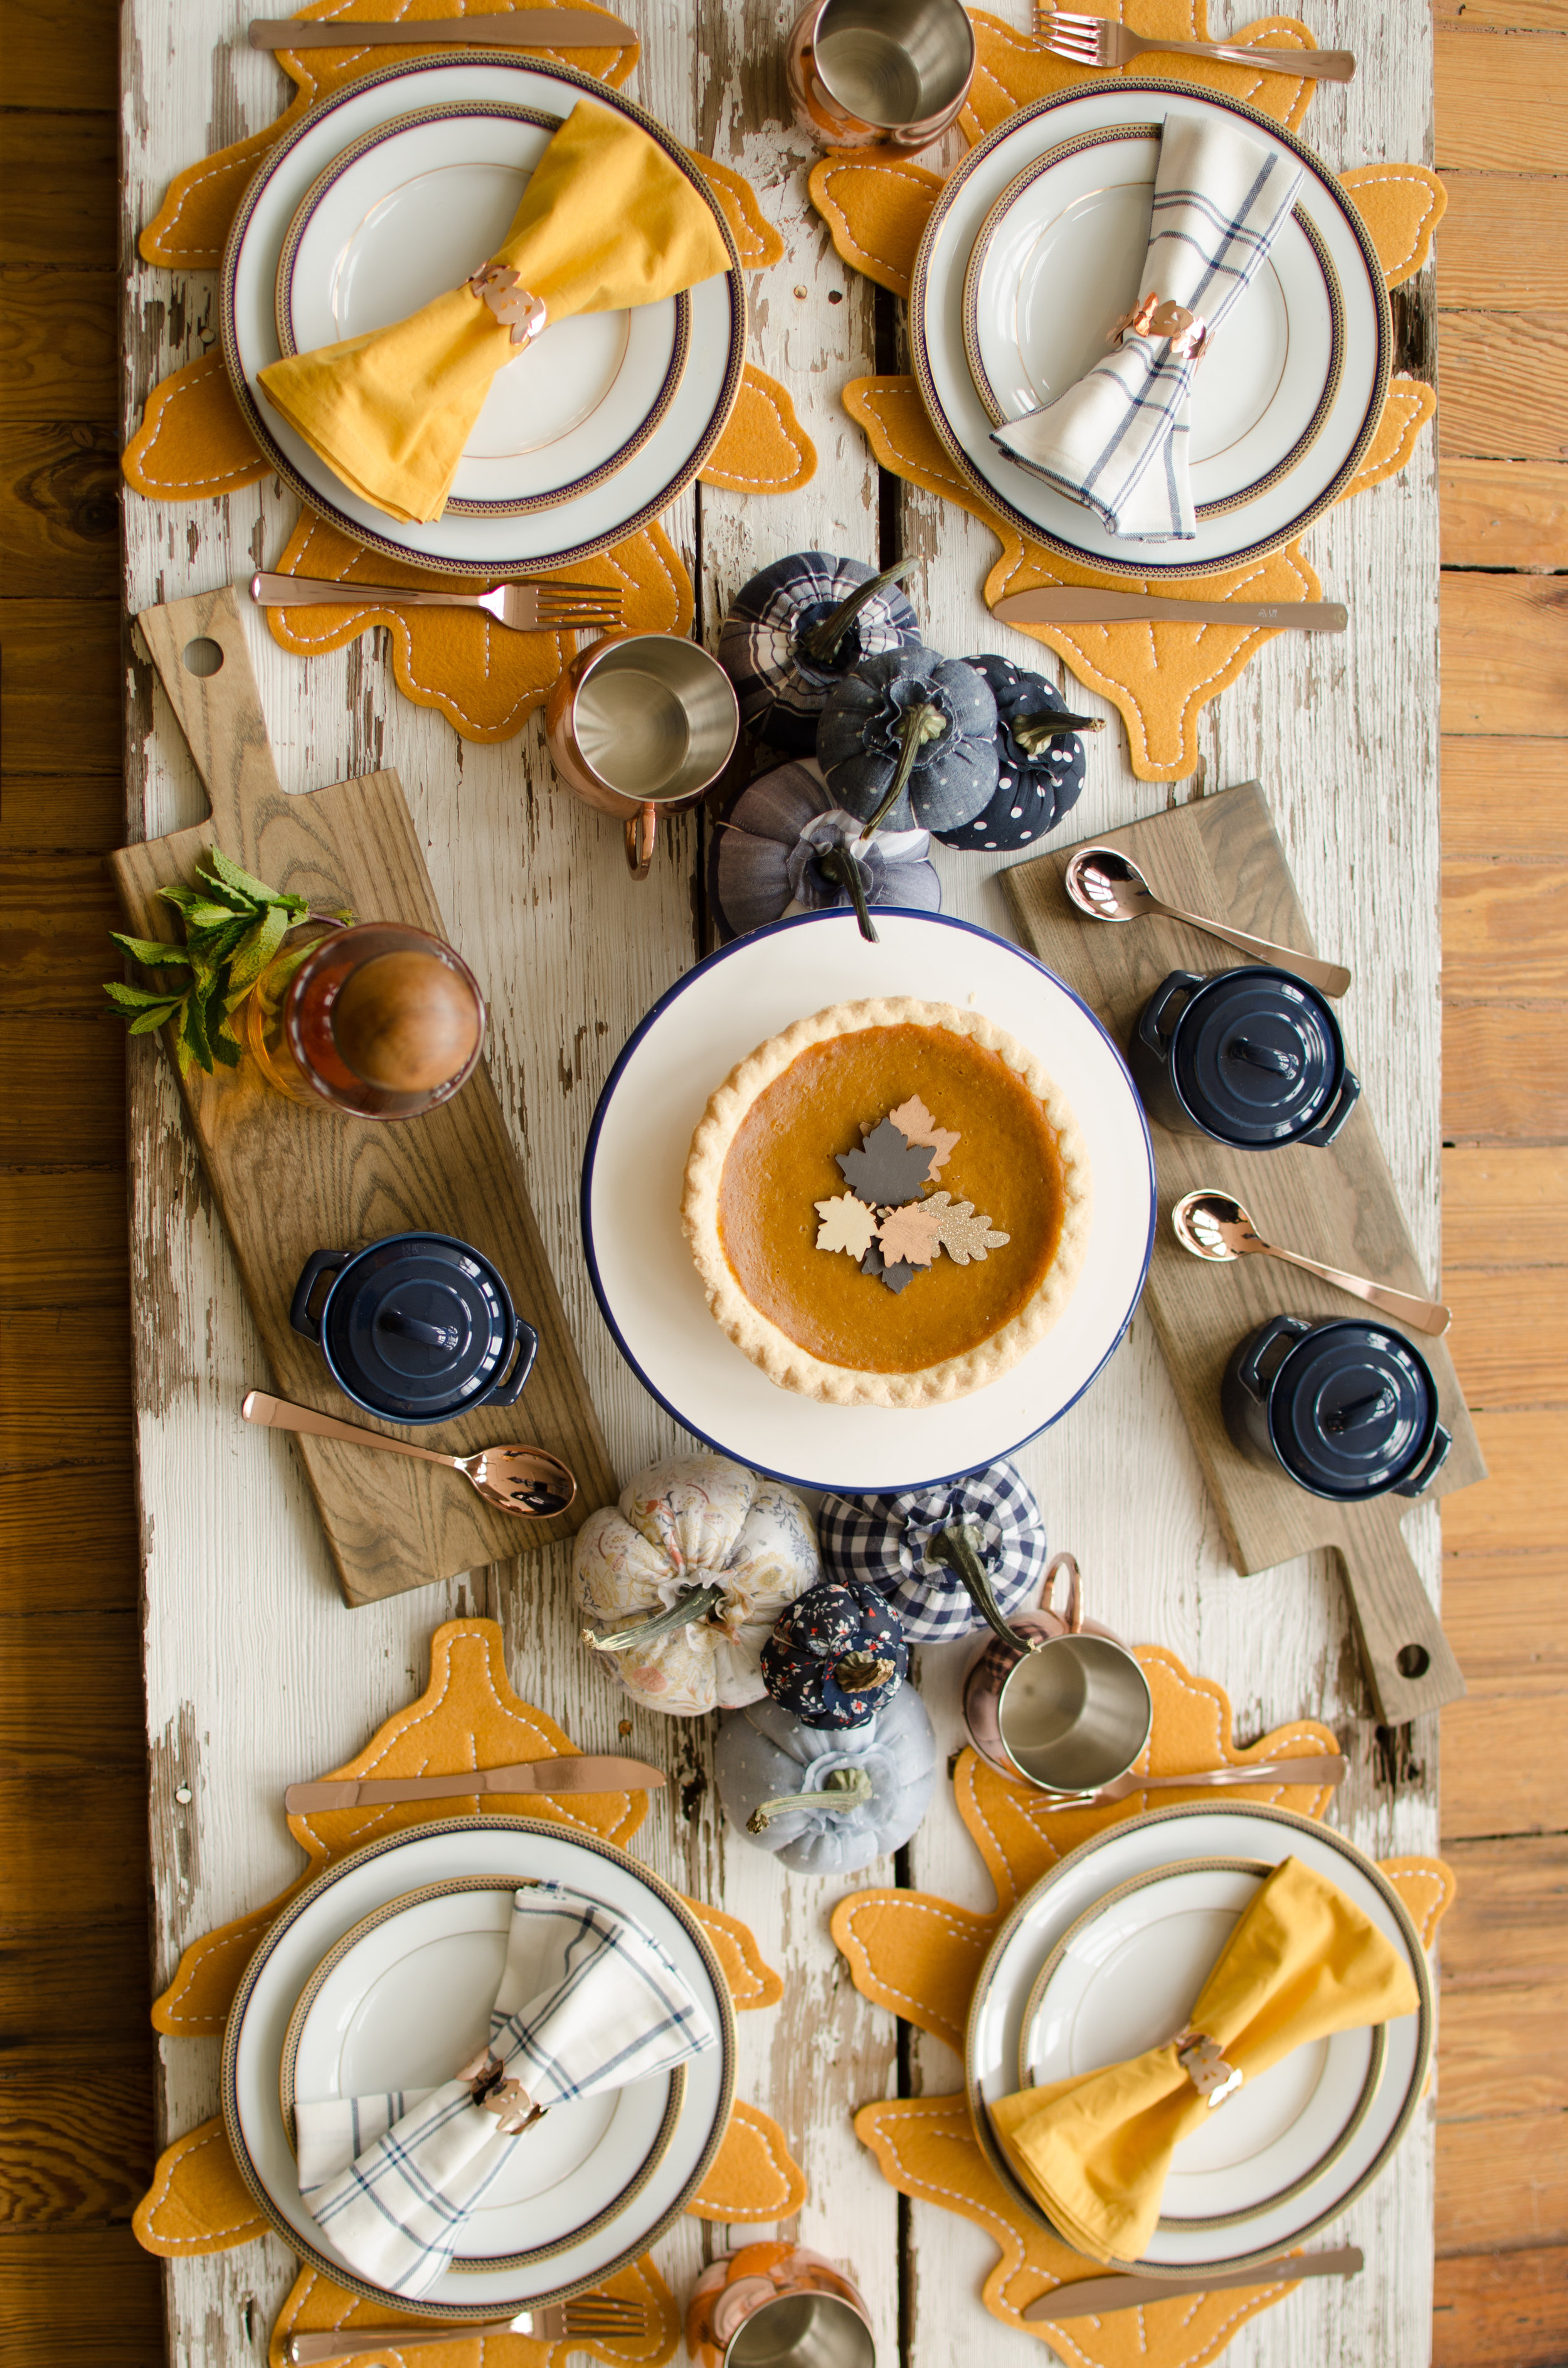 This Thanksgiving Table with Copper and Blue tones throughout creates the perfectly cozy and rustic table setting for your party gatherings. See more Thanksgiving Party Ideas from party planner, Mint Event Design in Austin, Texas on www.minteventdesign.com #thanksgiving #thanksgivingdecorations #tablescape #thanksgivingtable #pumpkins #tablesettings #fallparty